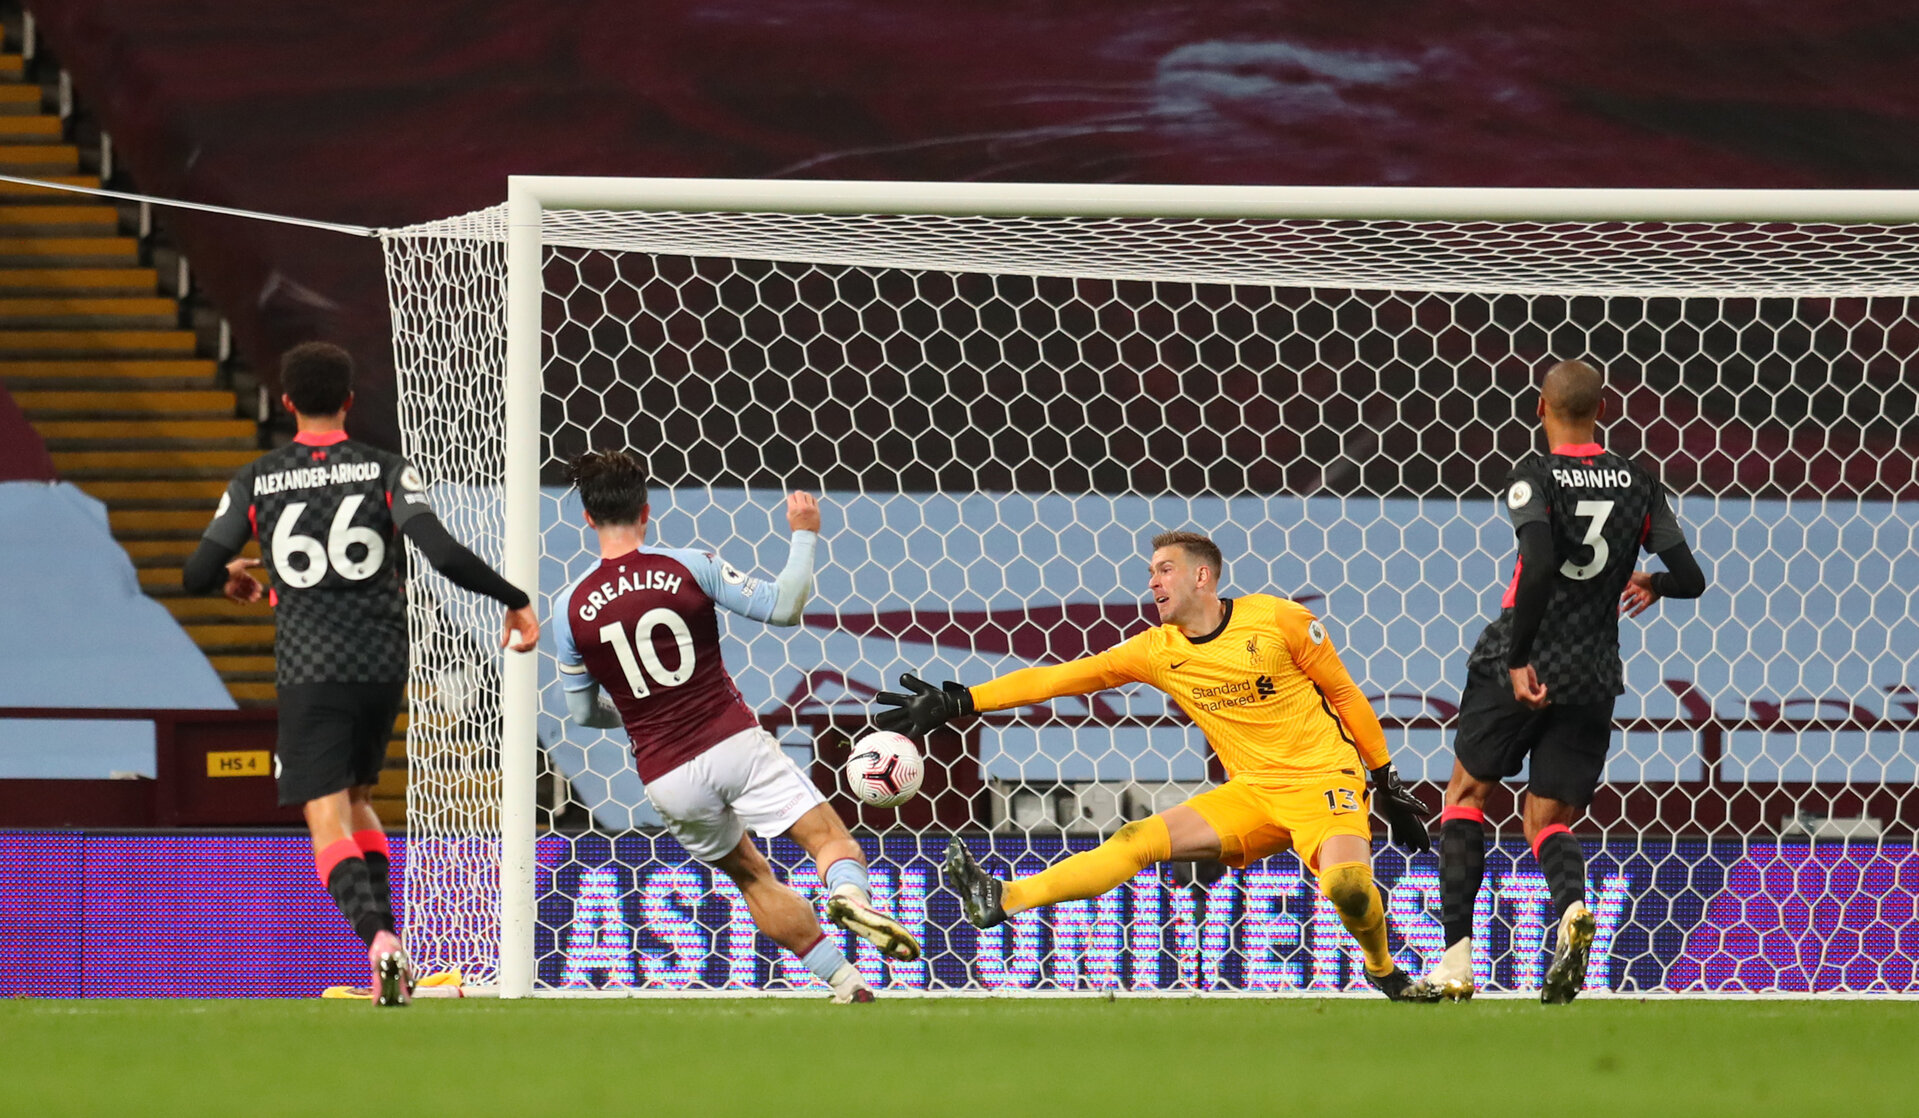 BIRMINGHAM, ENGLAND - OCTOBER 04: Jack Grealish of Aston Villa  scores his team's seventh goal  during the Premier League match between Aston Villa and Liverpool at Villa Park on October 04, 2020 in Birmingham, England. Sporting stadiums around the UK remain under strict restrictions due to the Coronavirus Pandemic as Government social distancing laws prohibit fans inside venues resulting in games being played behind closed doors. (Photo by Catherine Ivill/Getty Images)